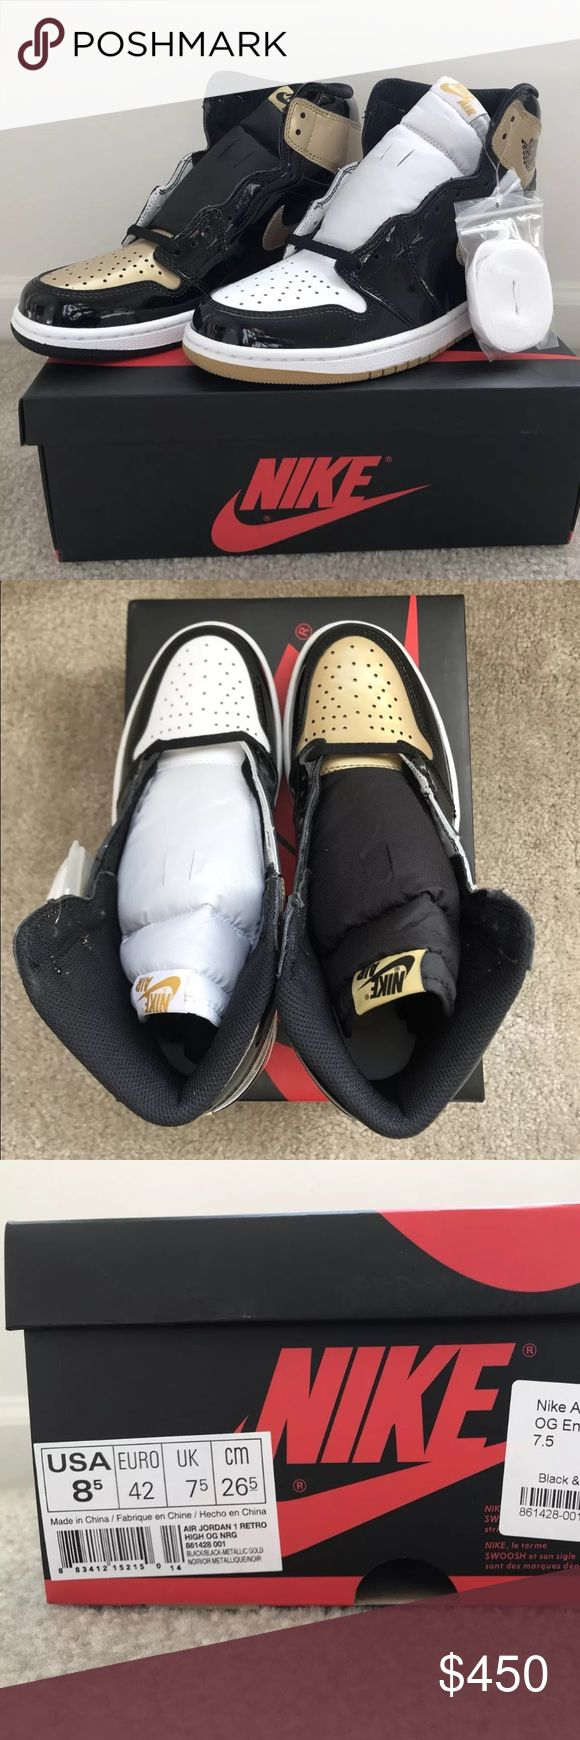 Air Jordan 1 Retro Gold Top 3s 100% Authentic 🔹 We are a very negotiable service 🔹 We provide overnight shipping and express shipping 🔹 Our transactions are made through third party applications 🔹 If you are interested in buying this product please contact us via 646-961-2836 🔹 Air Jordan Shoes Sneakers